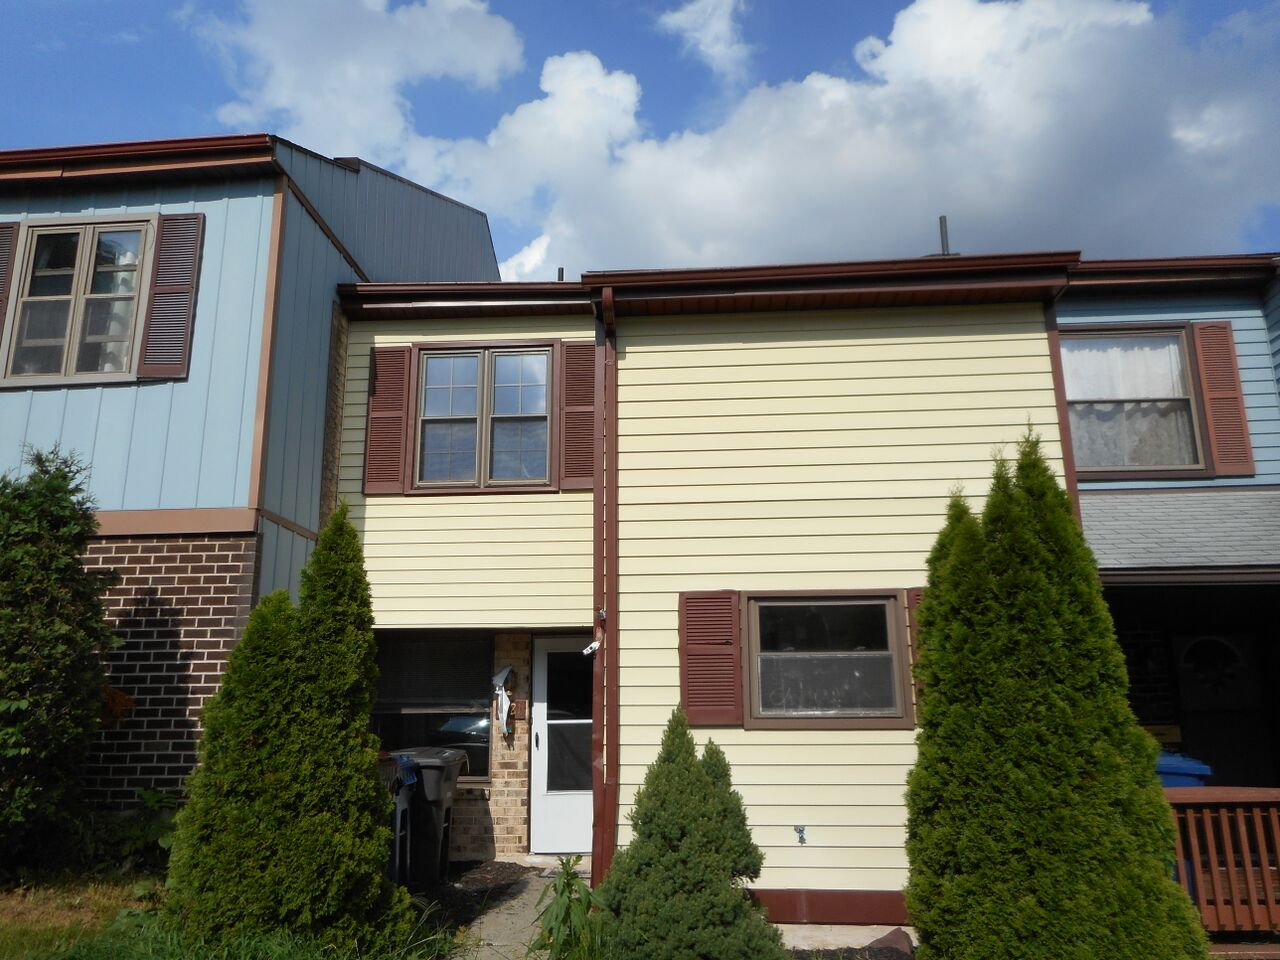 Allentown - 3 Beds 3 Baths $159,900